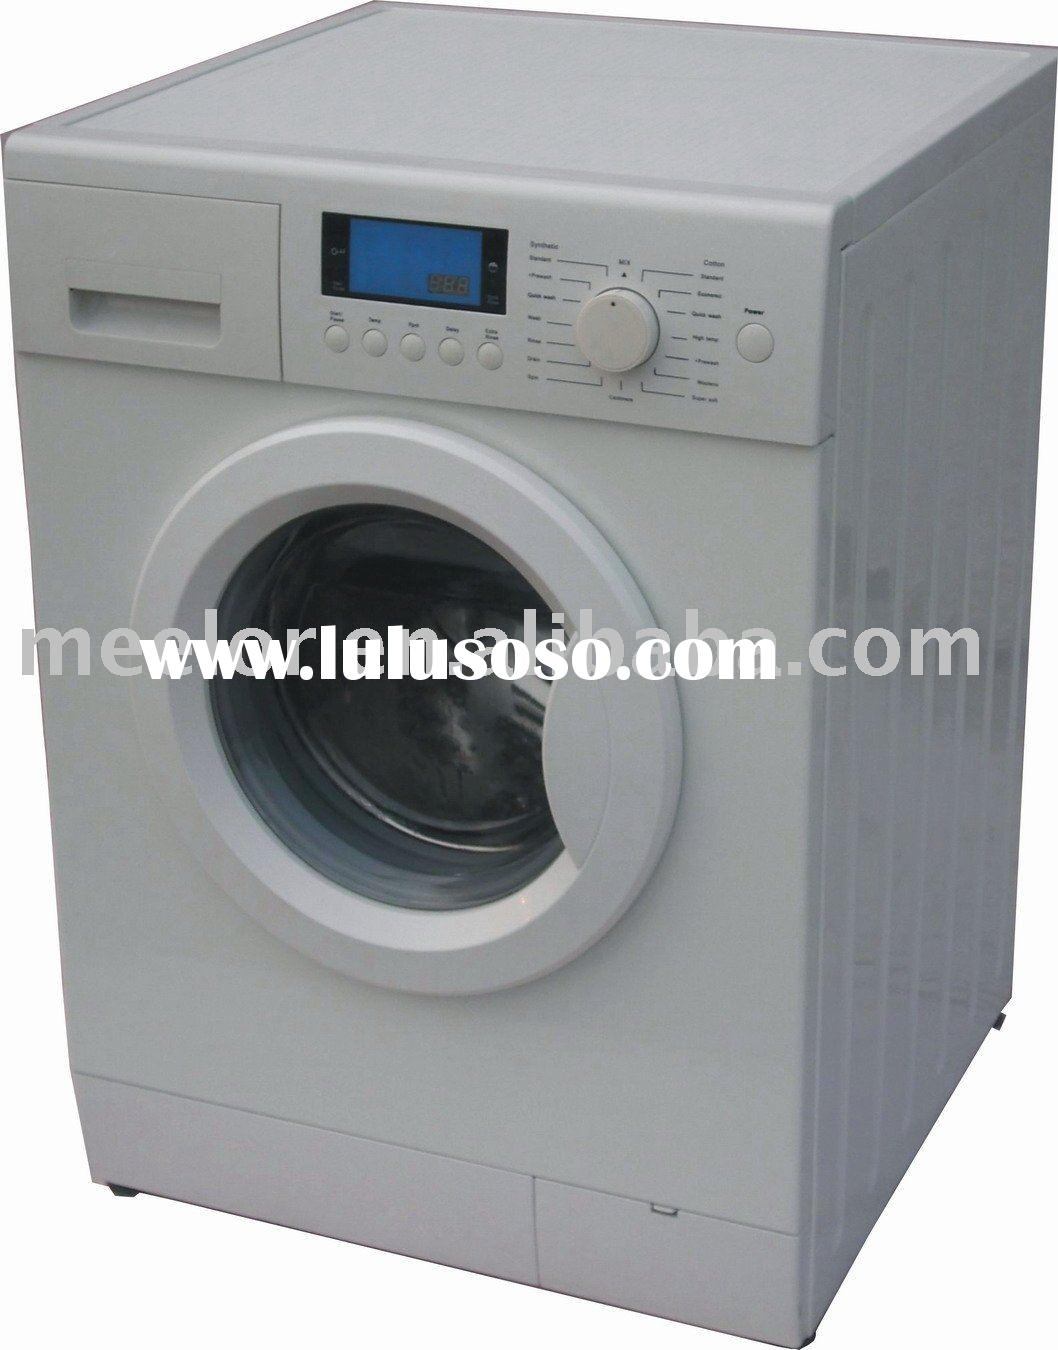 how to balance a front load washing machine